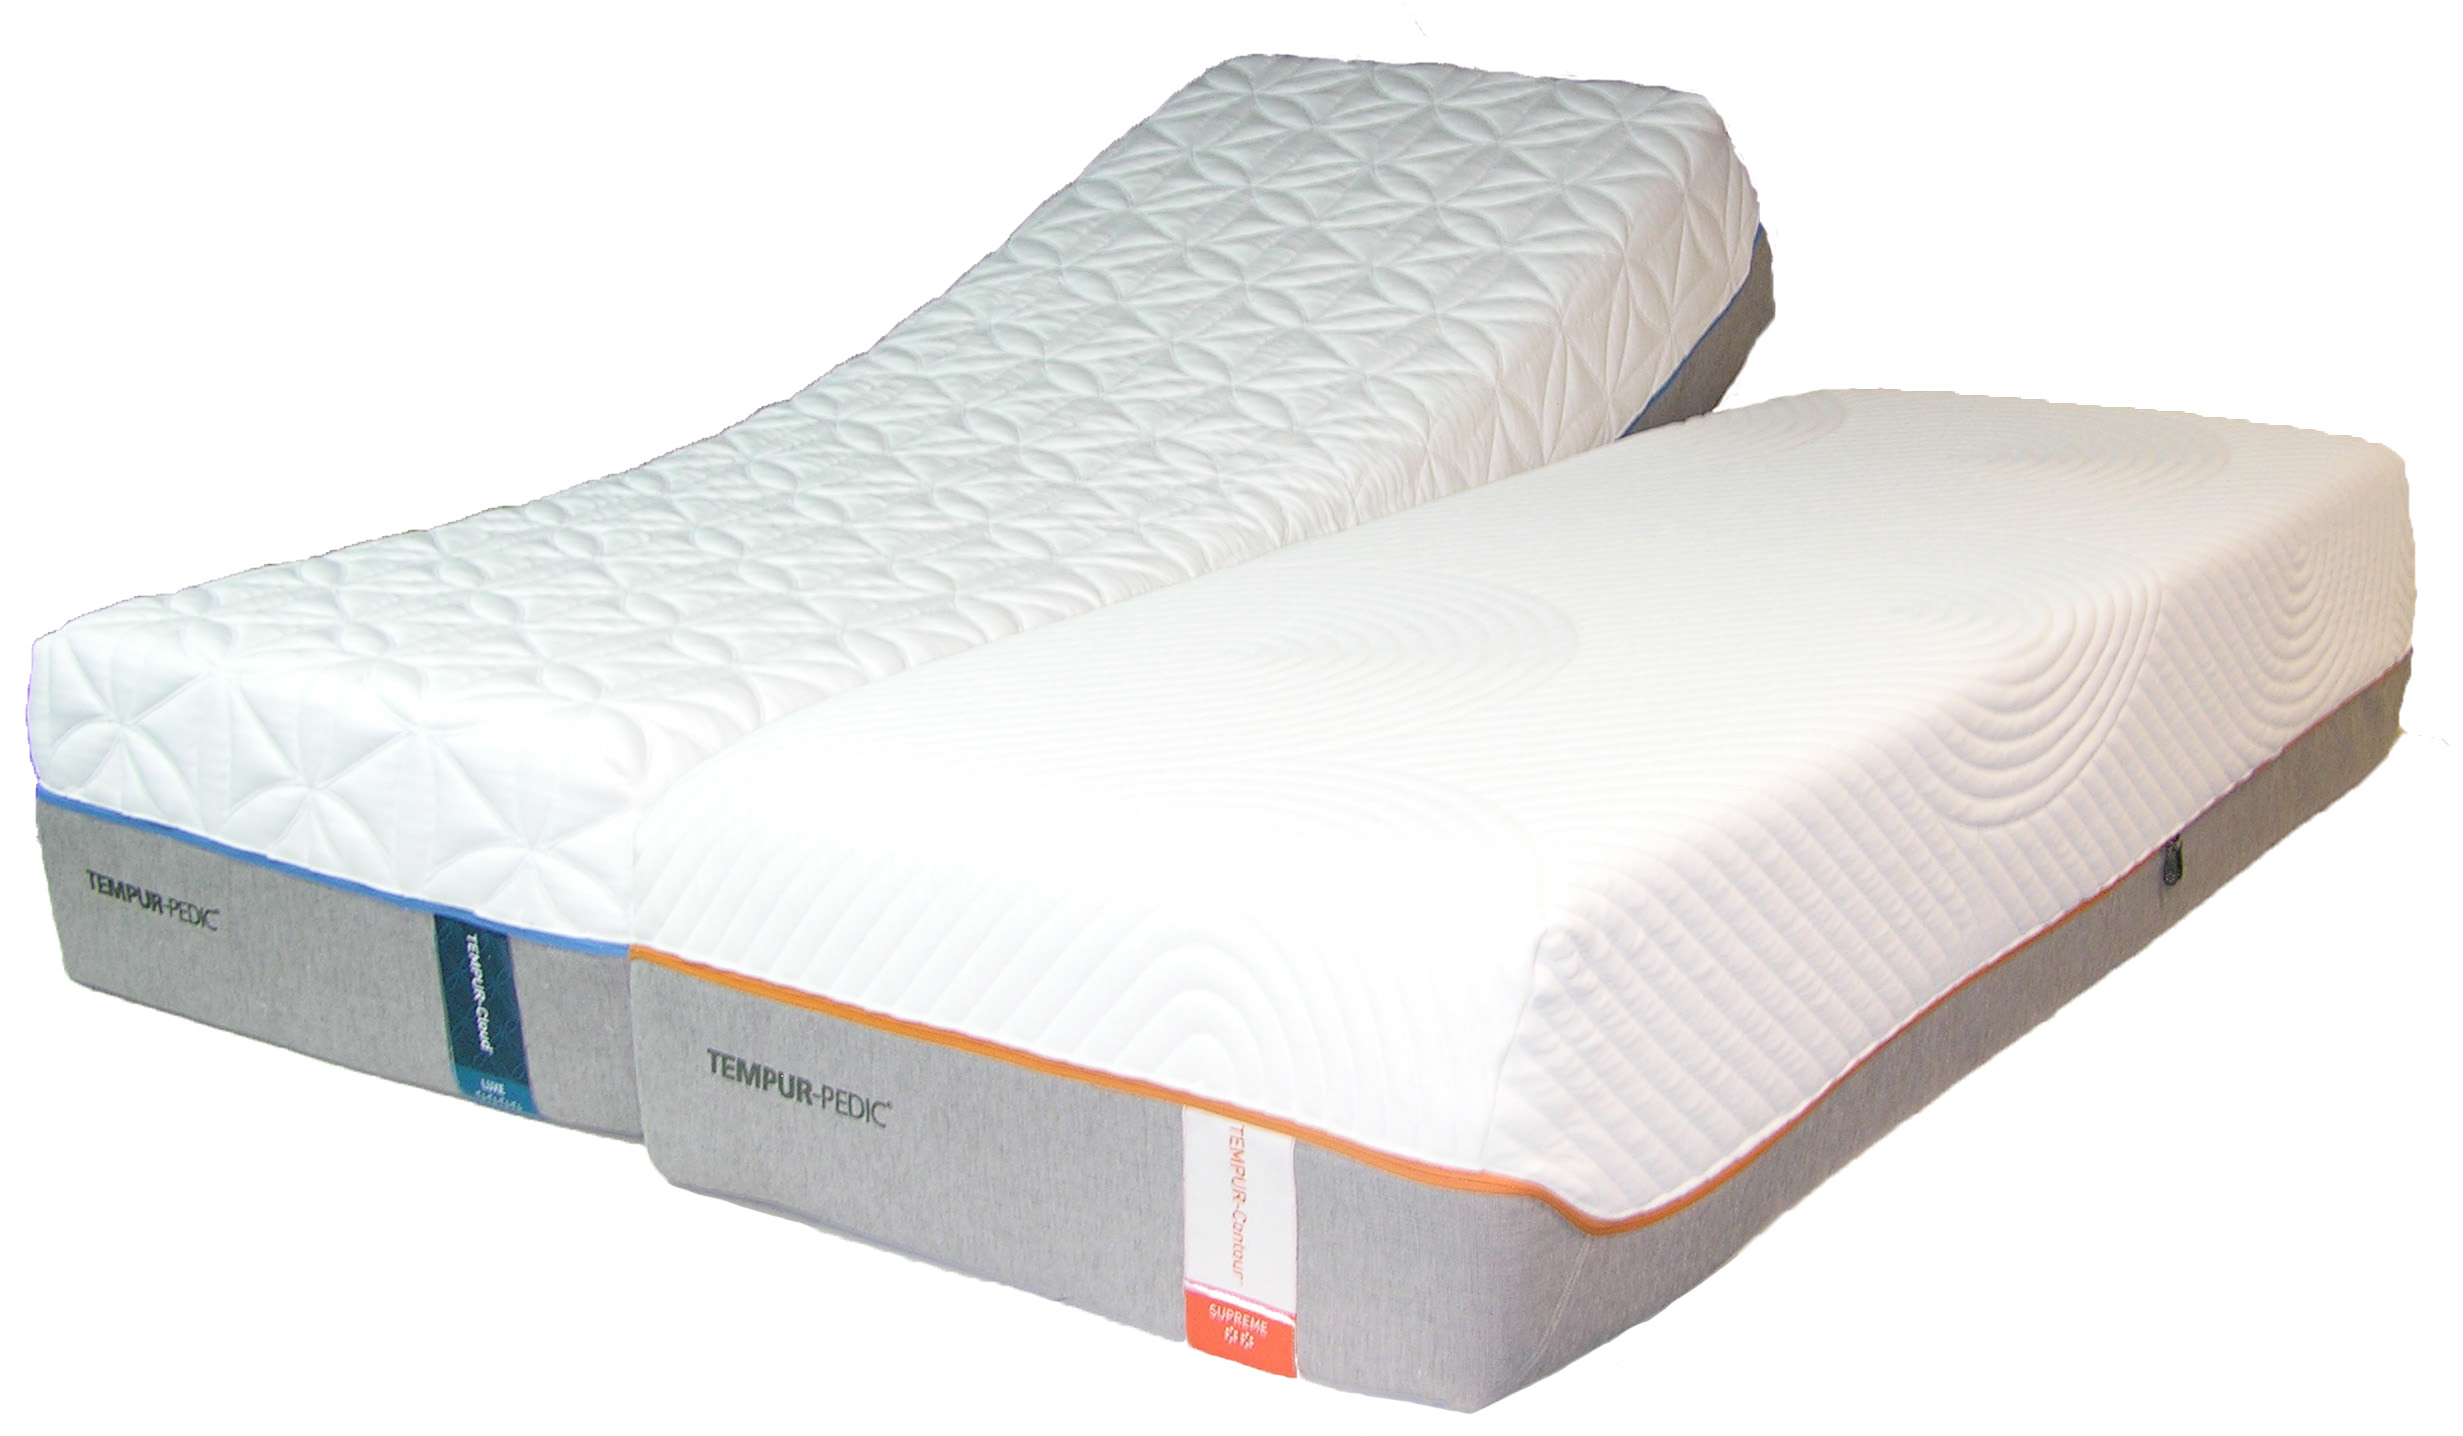 Adjustable tempur pedic mattress adjustable bed temperpedic ca mattress tempurpedic tempur Queen size bed and mattress set